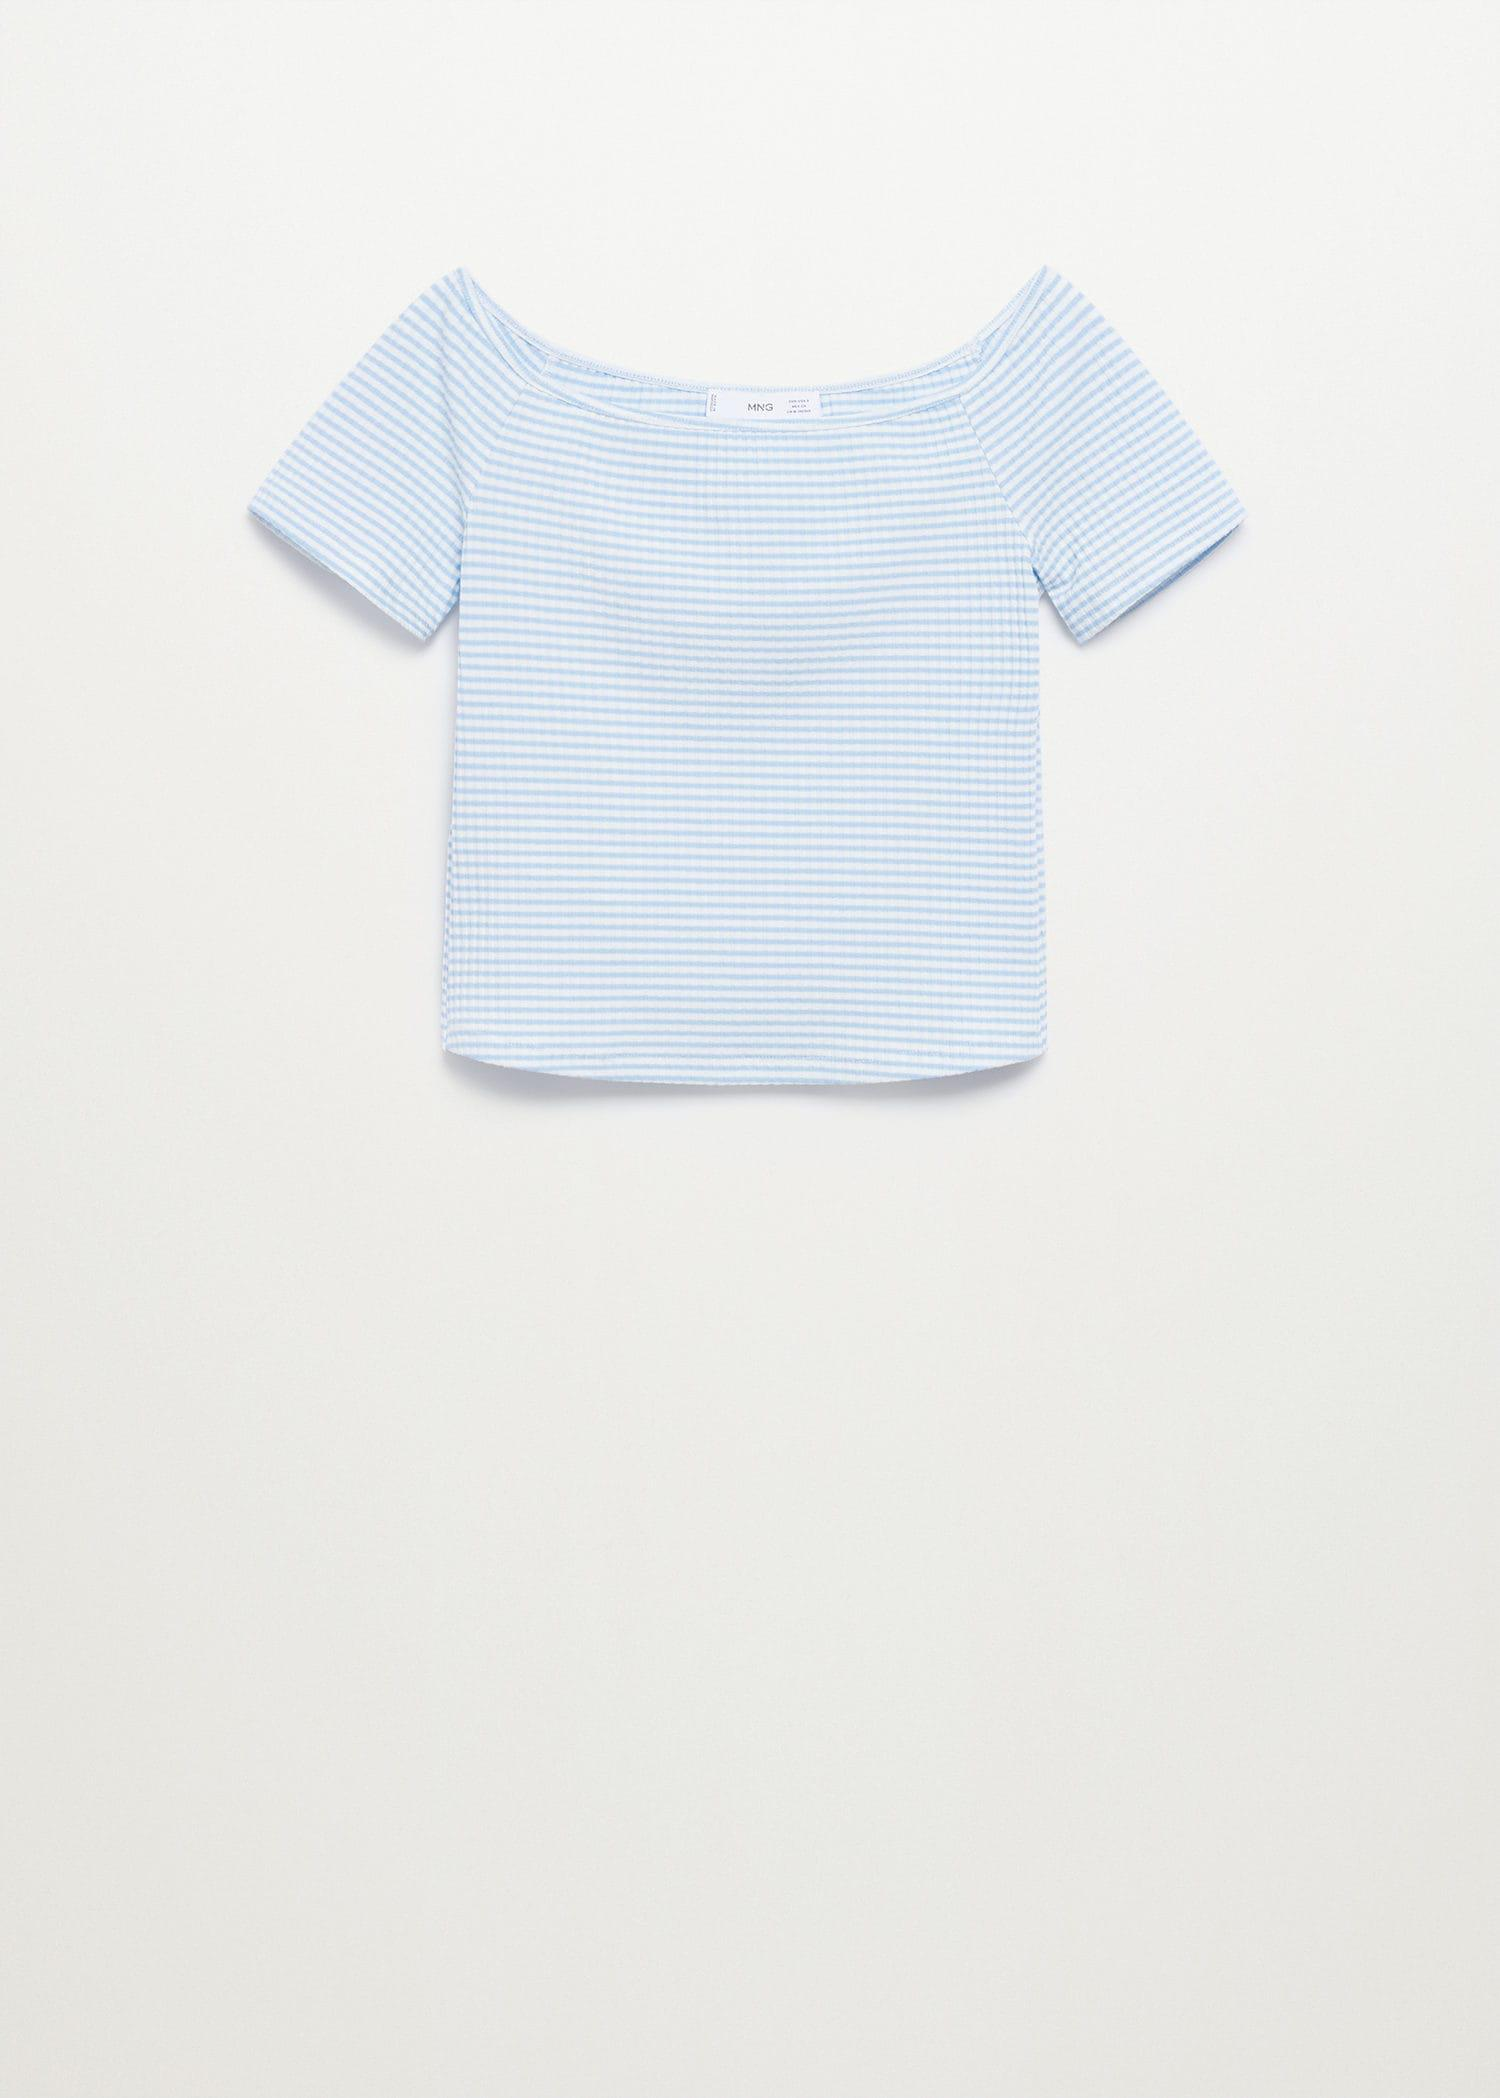 Crop t-shirt recycled polyester dress 6